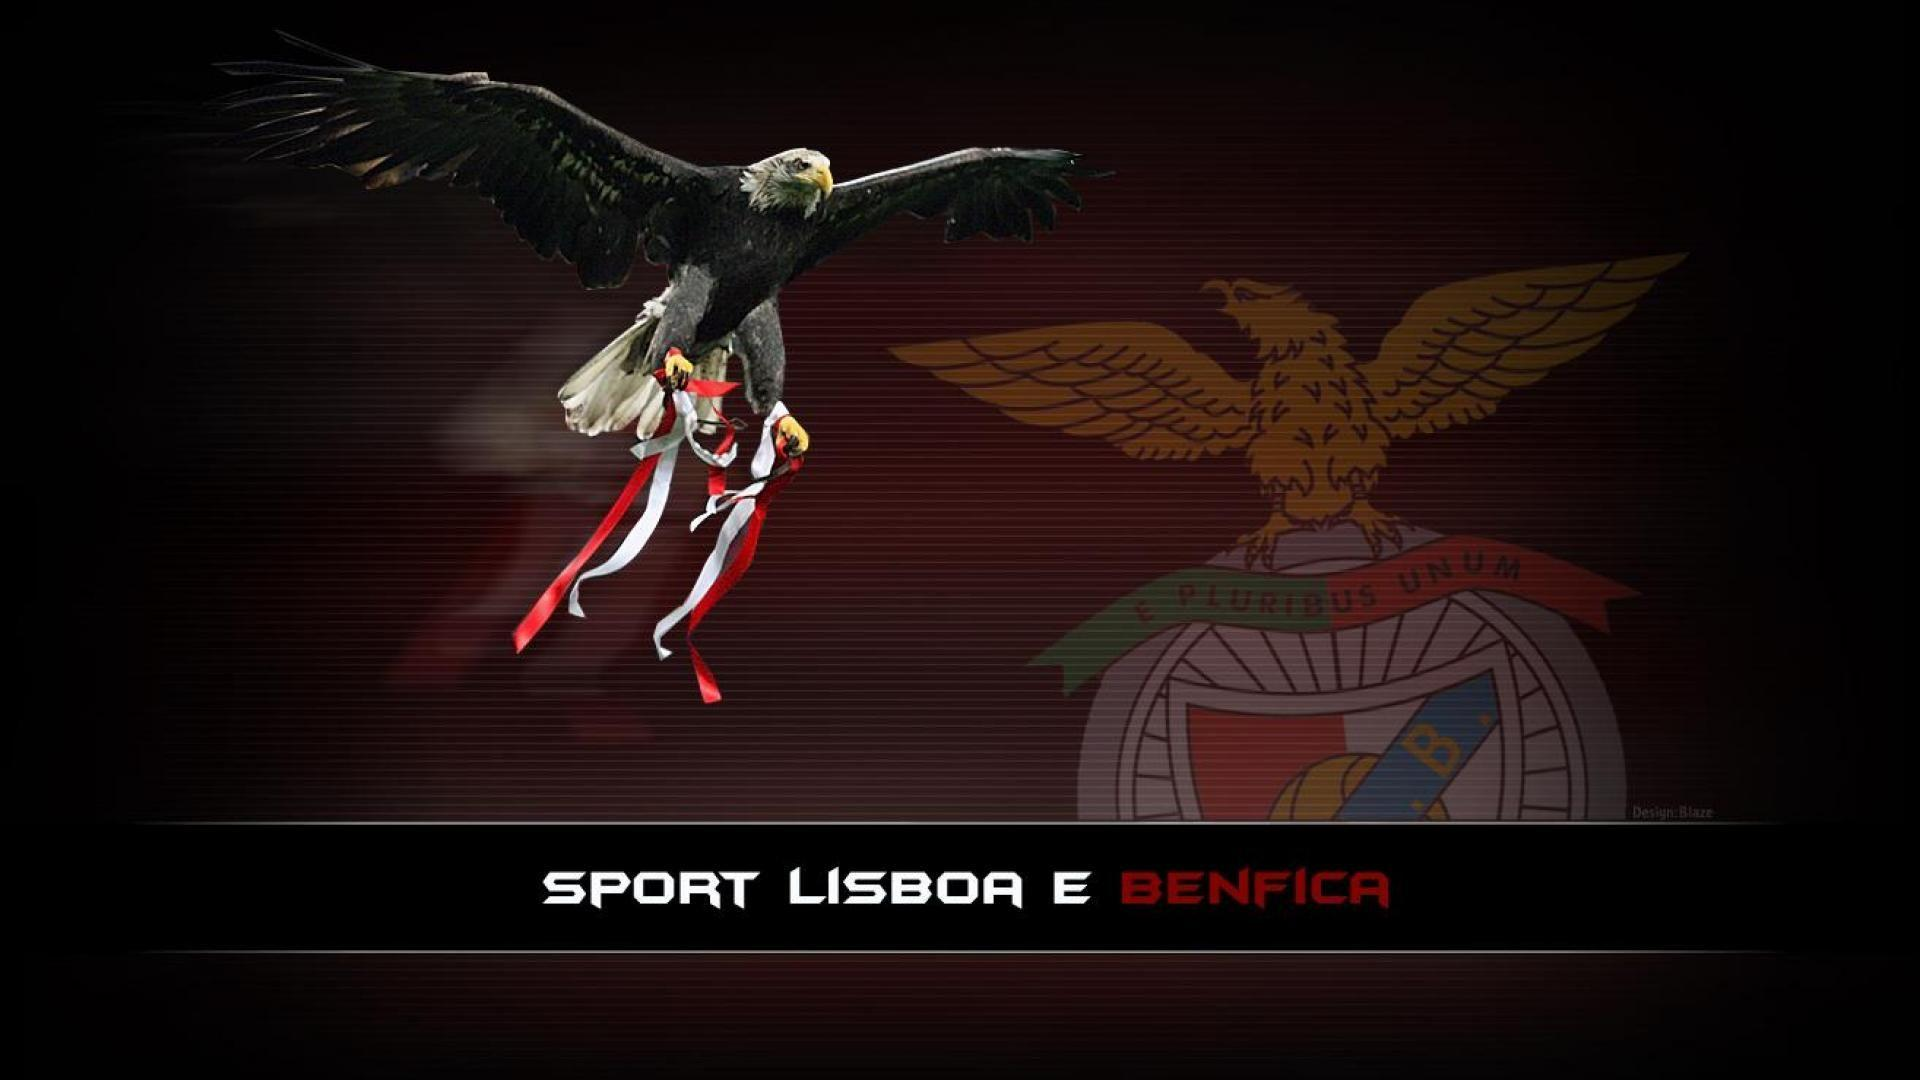 Collection of Benfica Wallpapers on Spyder Wallpapers